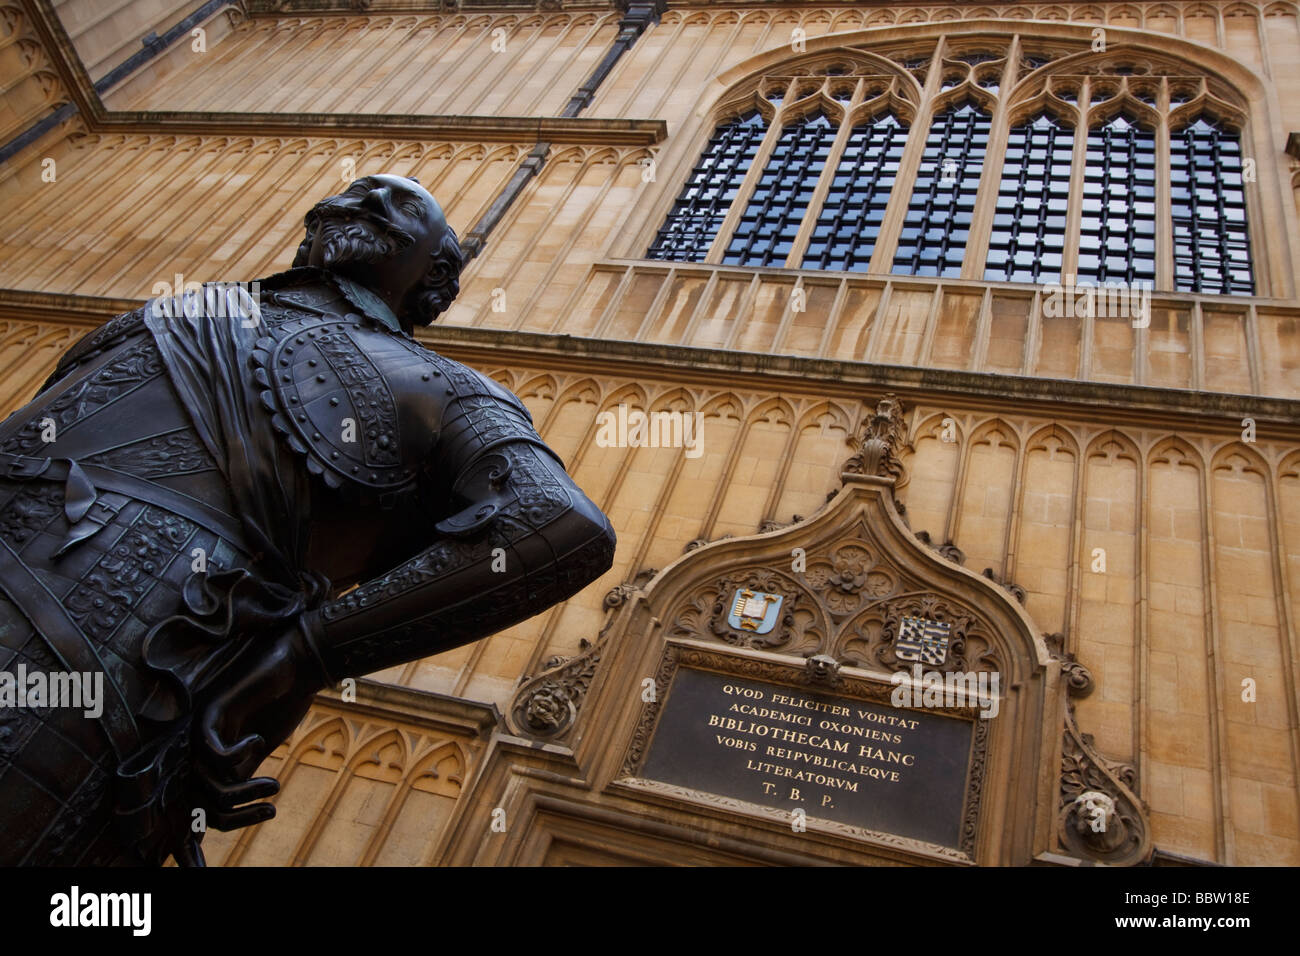 Statue of the Earl of Pembroke at the Bodleian Library, The University of Oxford - Stock Image